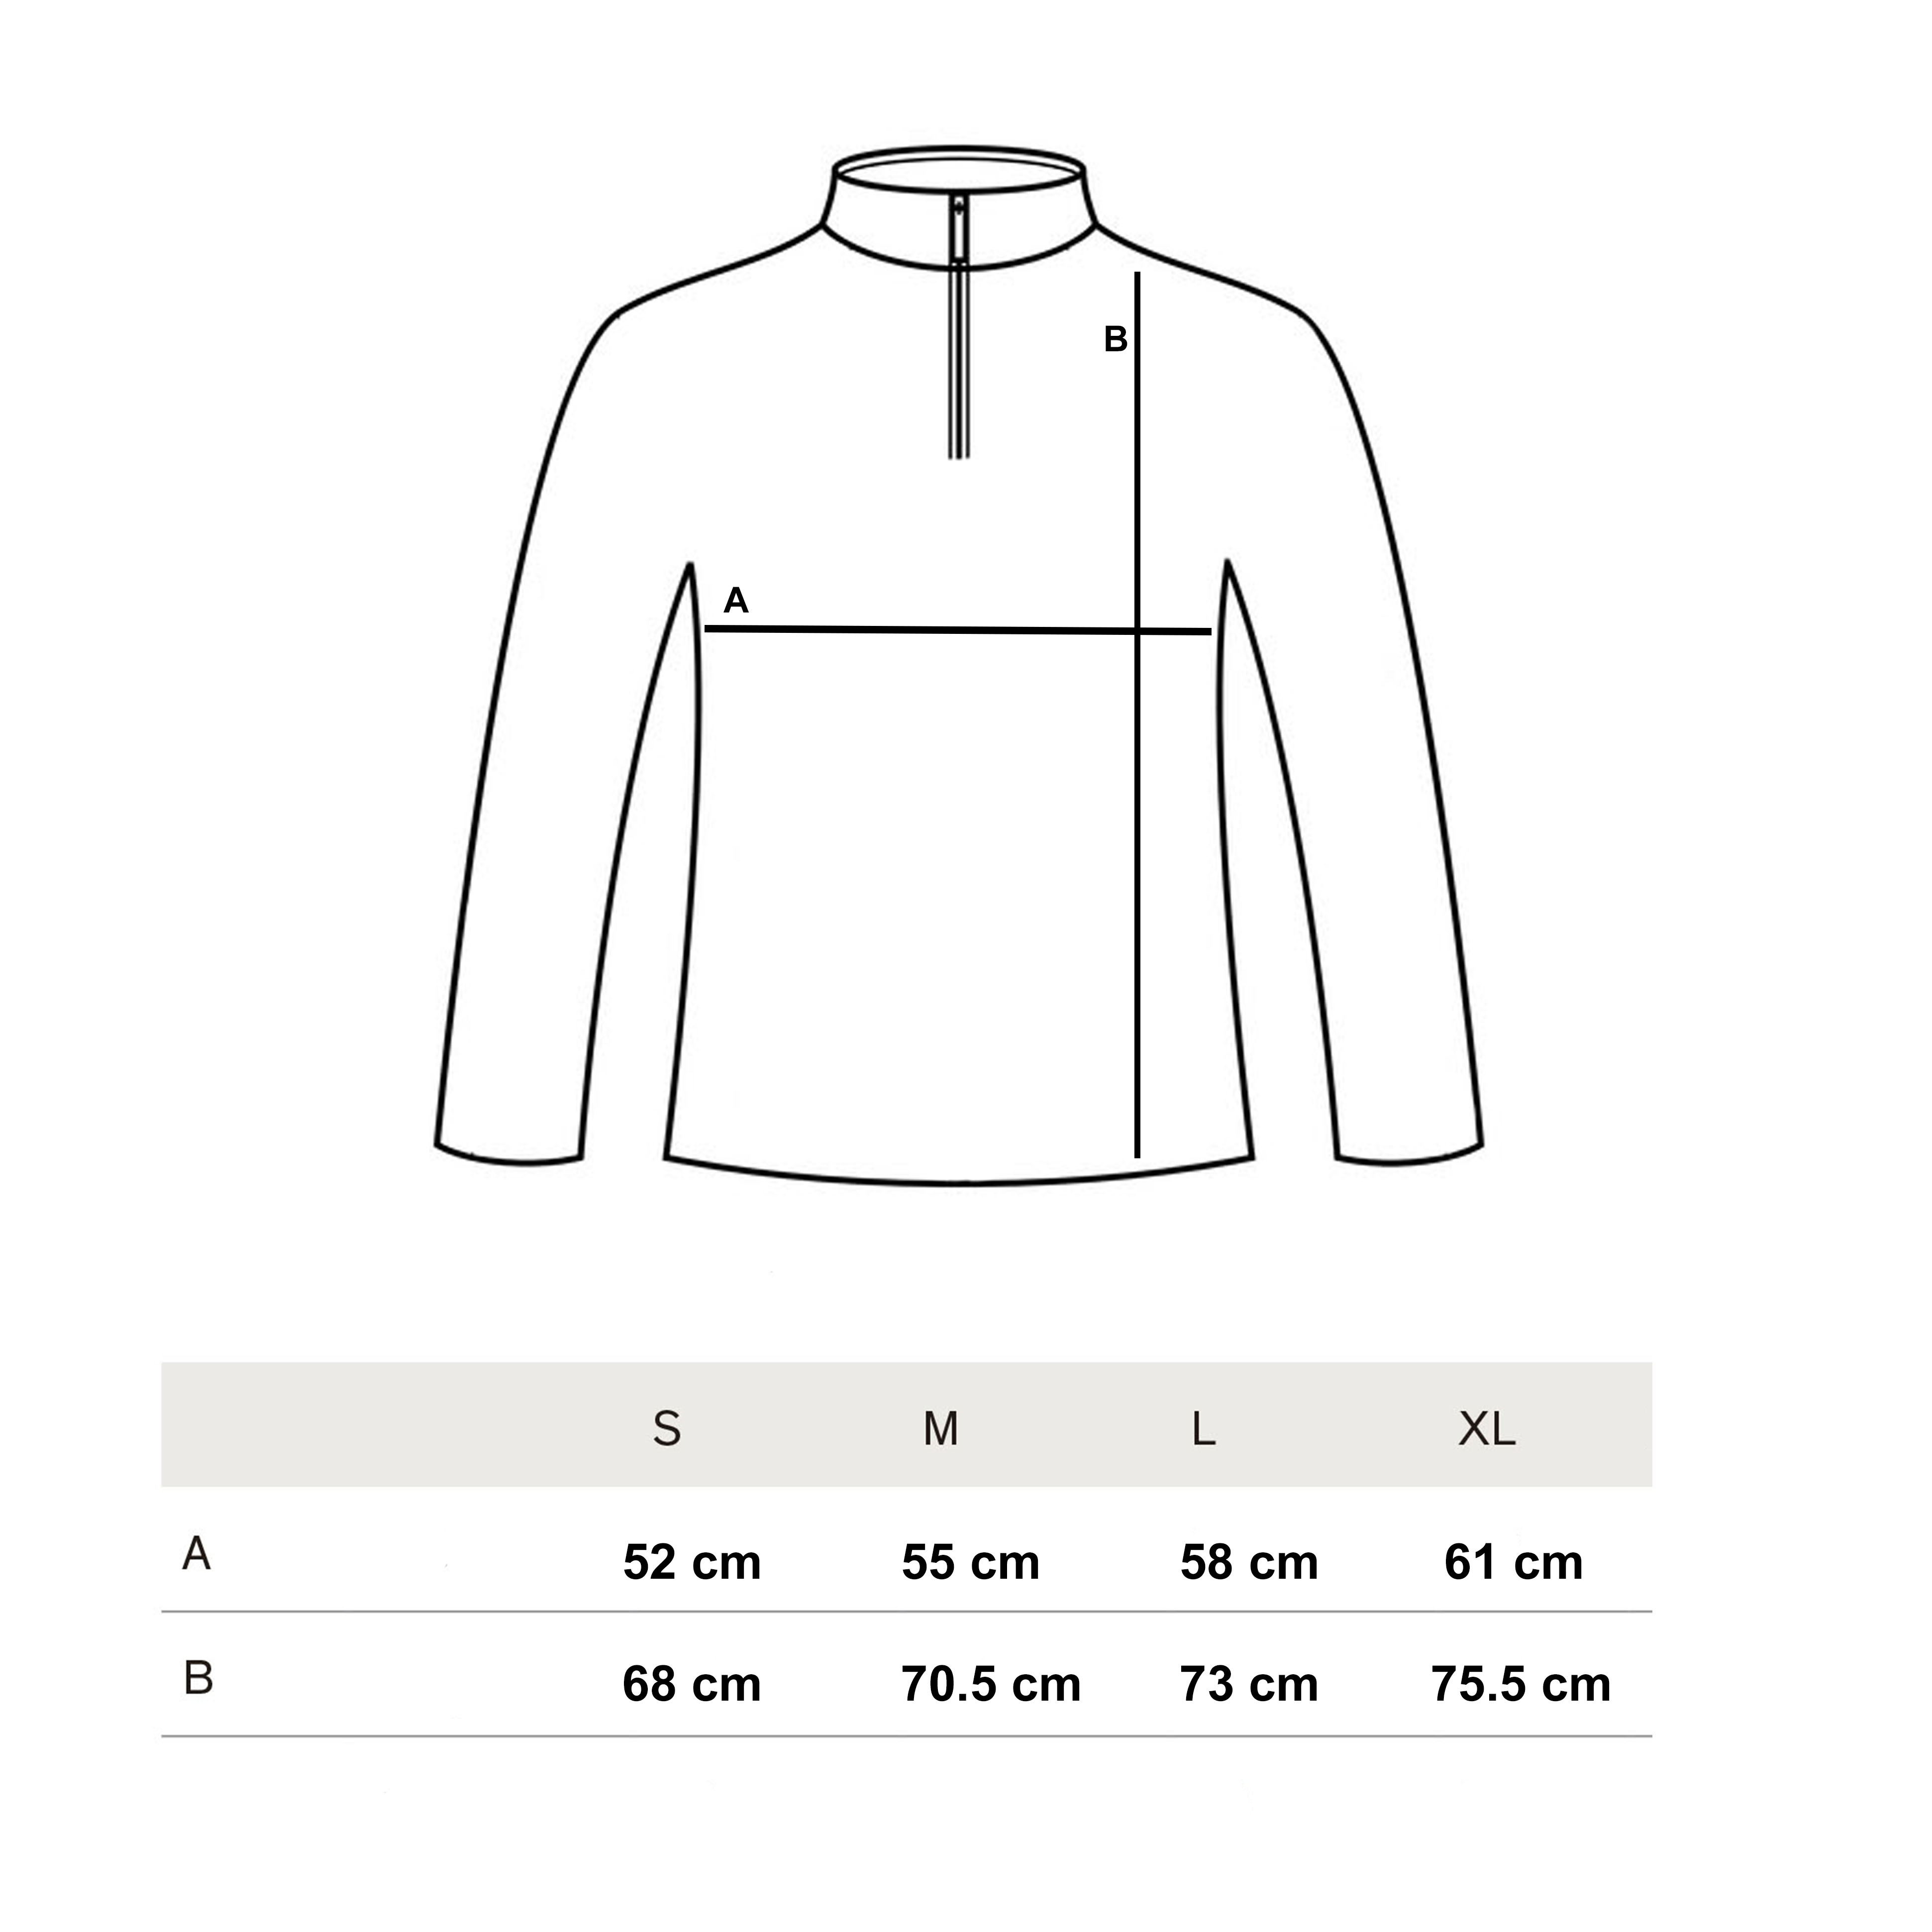 Zipper Size Guide